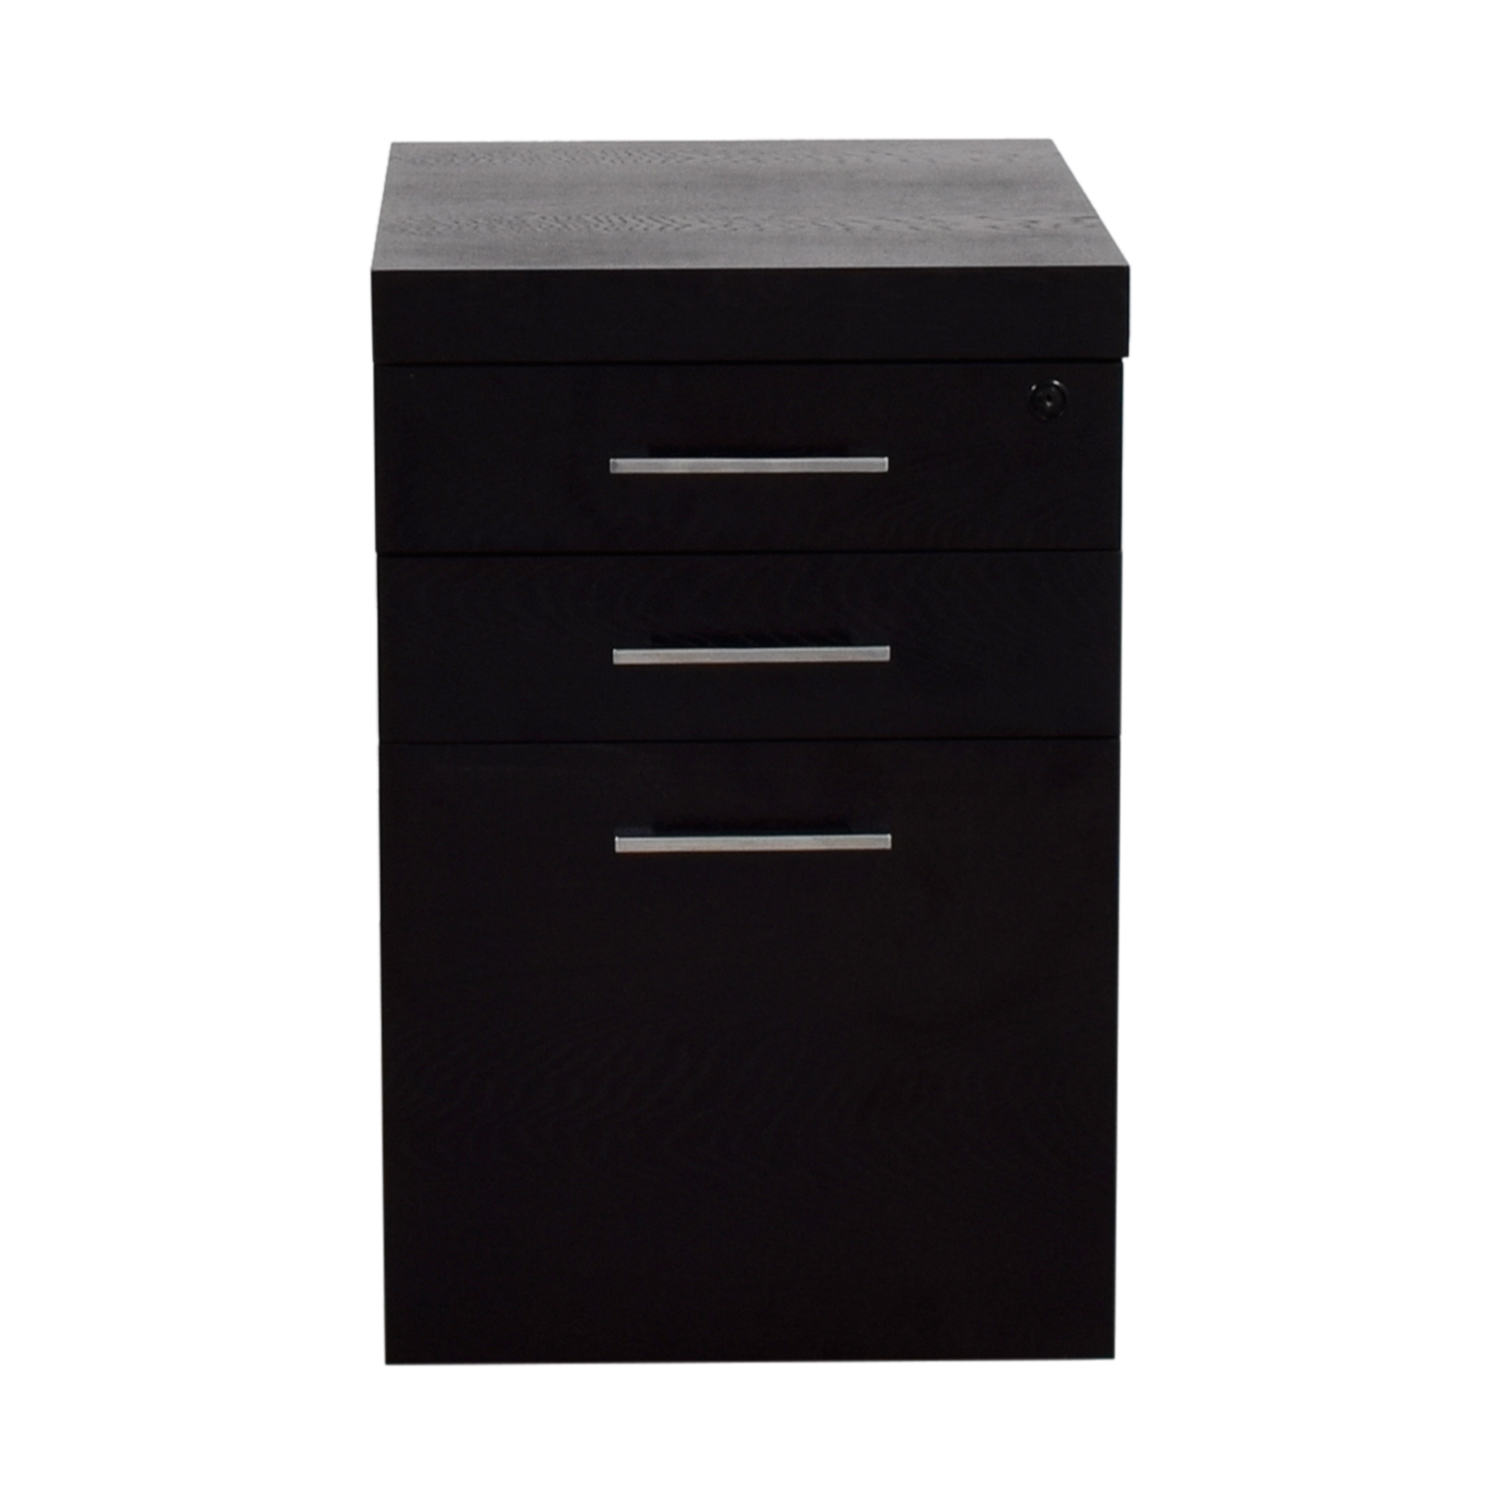 Macys Macys Stockholm Three-Drawer Filing Cabinet second hand